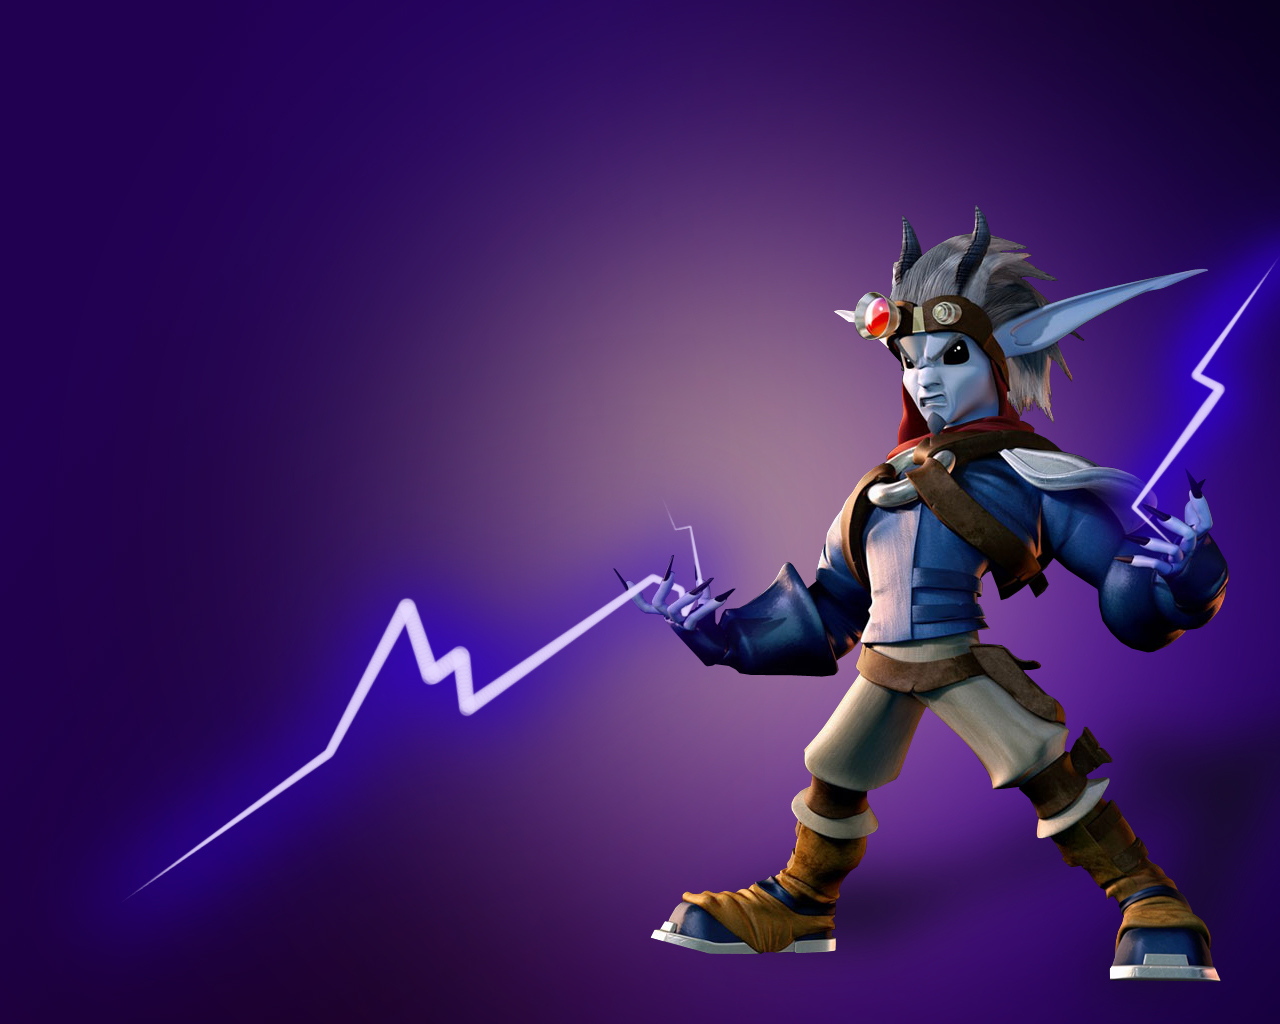 Download Jak Daxter Wallpapers: Dark Jak Wallpaper By MechanicalFiend9 On DeviantArt